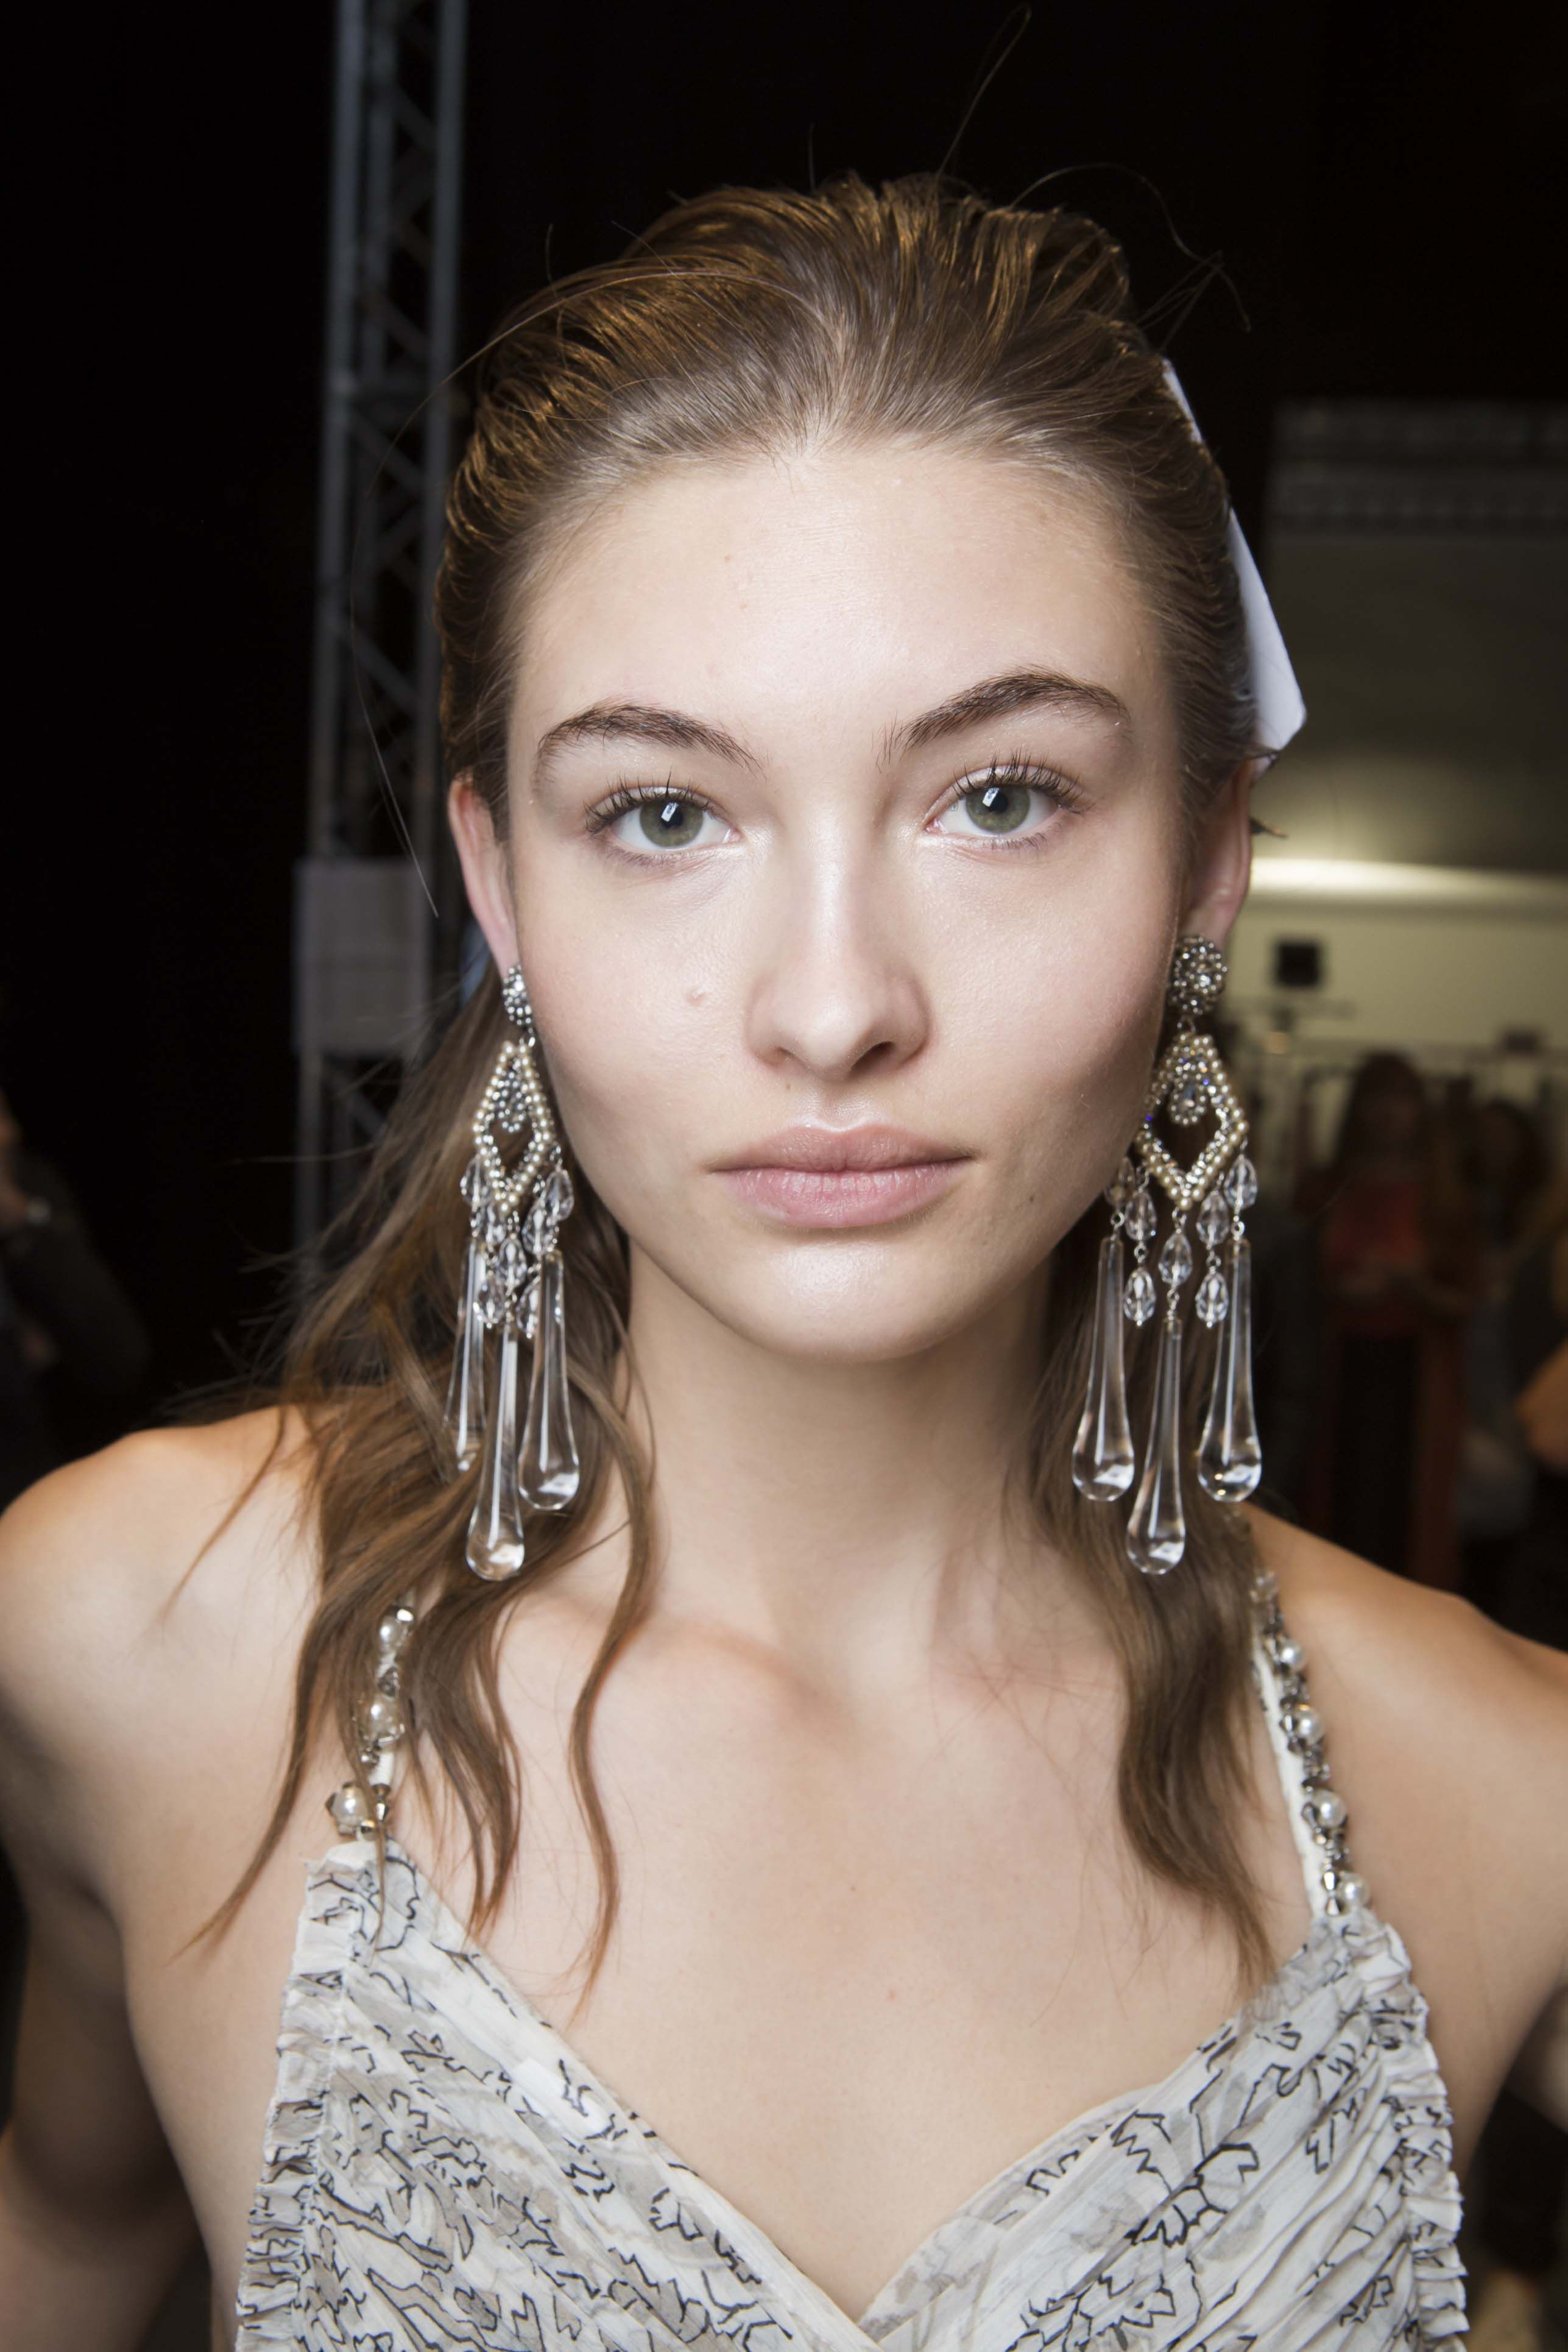 Spring Beauty Trends You Can Wear RightNow forecasting